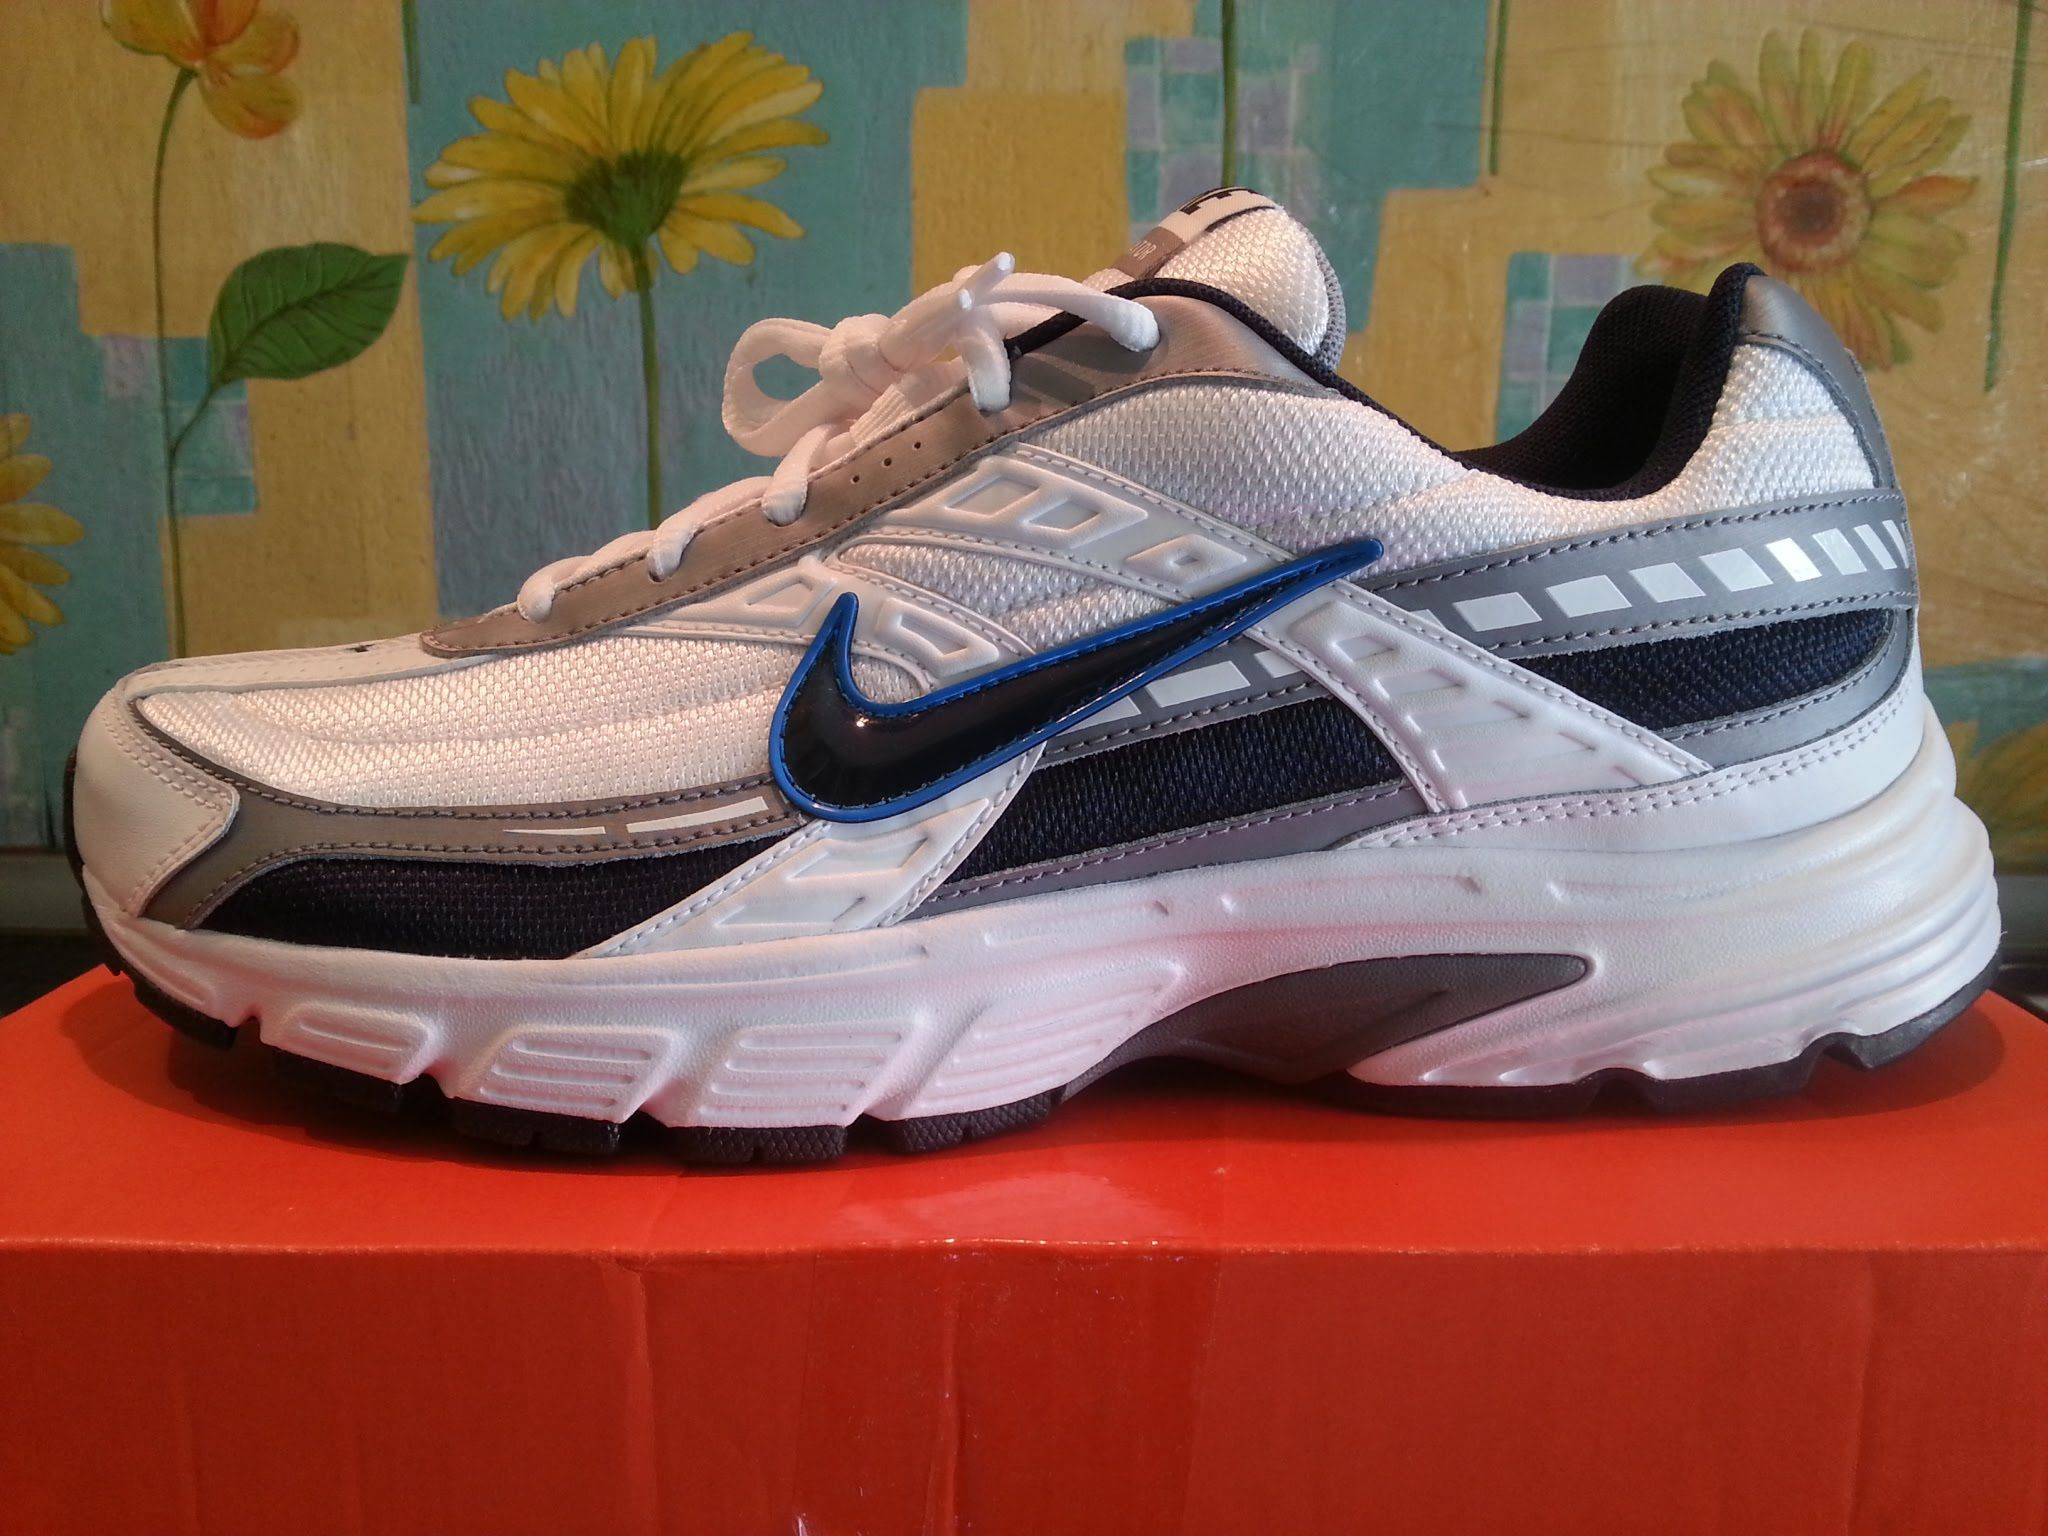 Nike Initiator Men's Running Shoes Full HD 1080p Unboxing